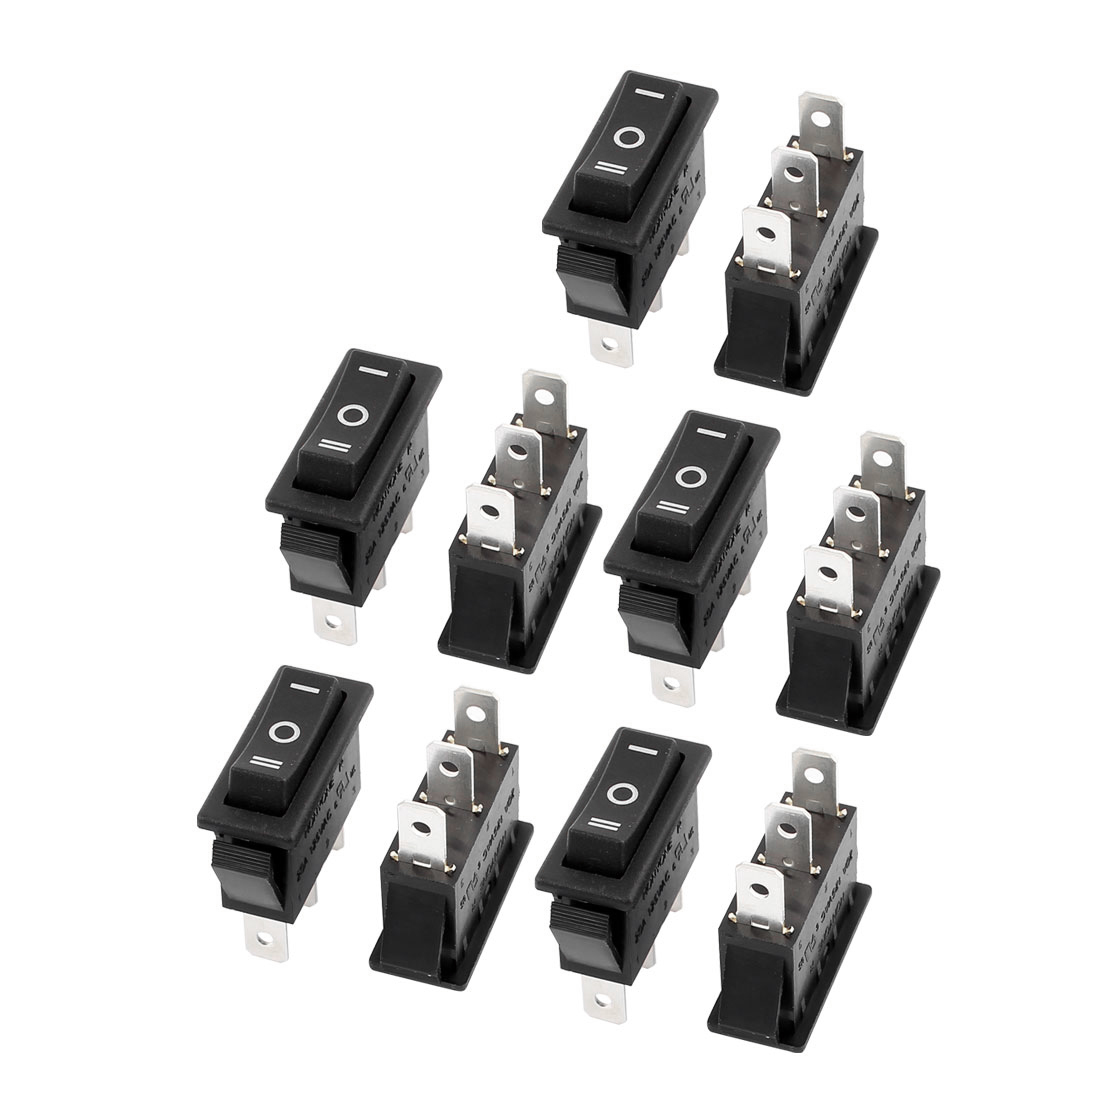 10 Pcs AC 6A/250V 10A/125V 2 Solder Lug SPST On/Off Mini Boat Rocker Switch